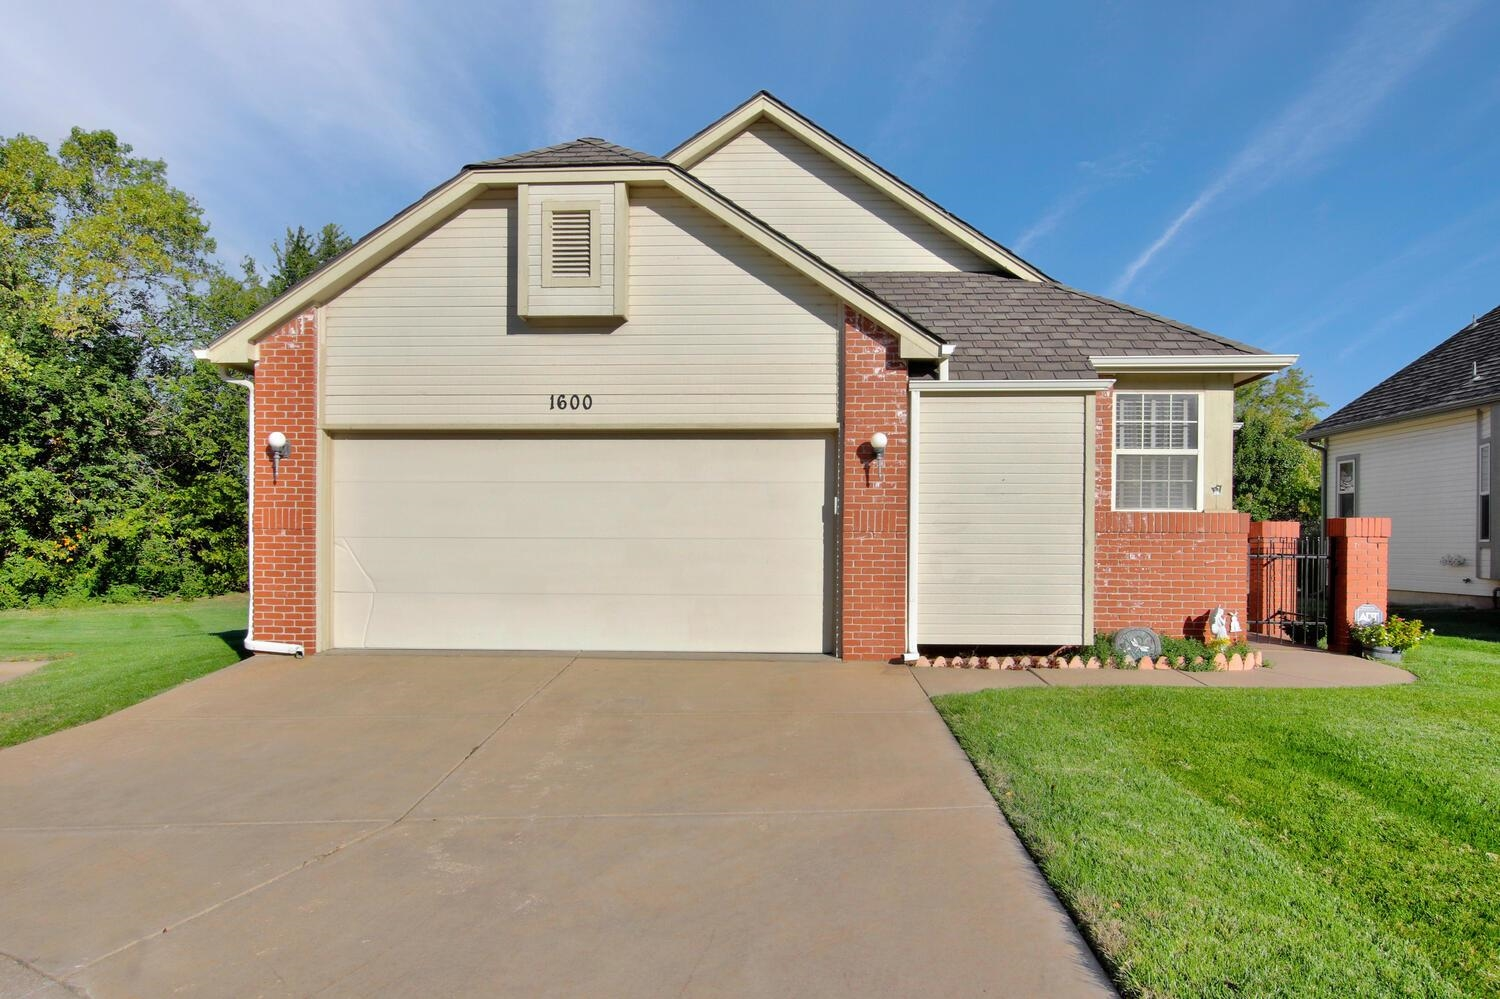 Fabulous patio home located in the ever popular Allen's Lake!  Low maintenance living in a charming